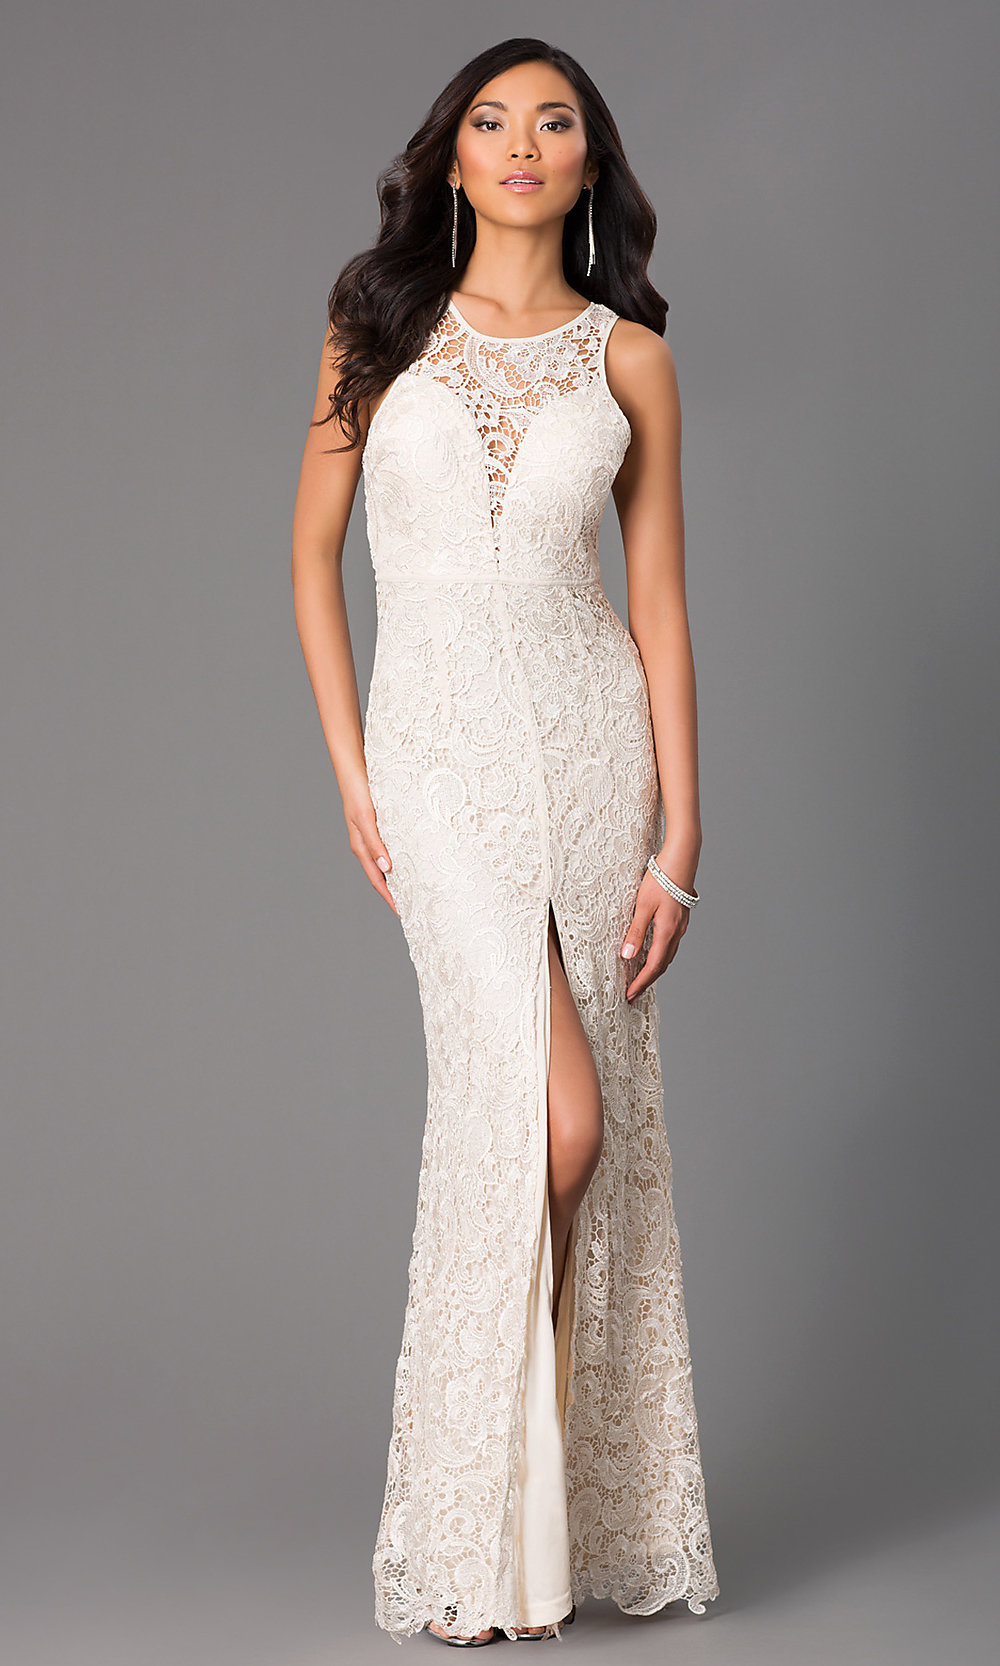 Long Lace Sleeveless Dress With Slits Promgirl